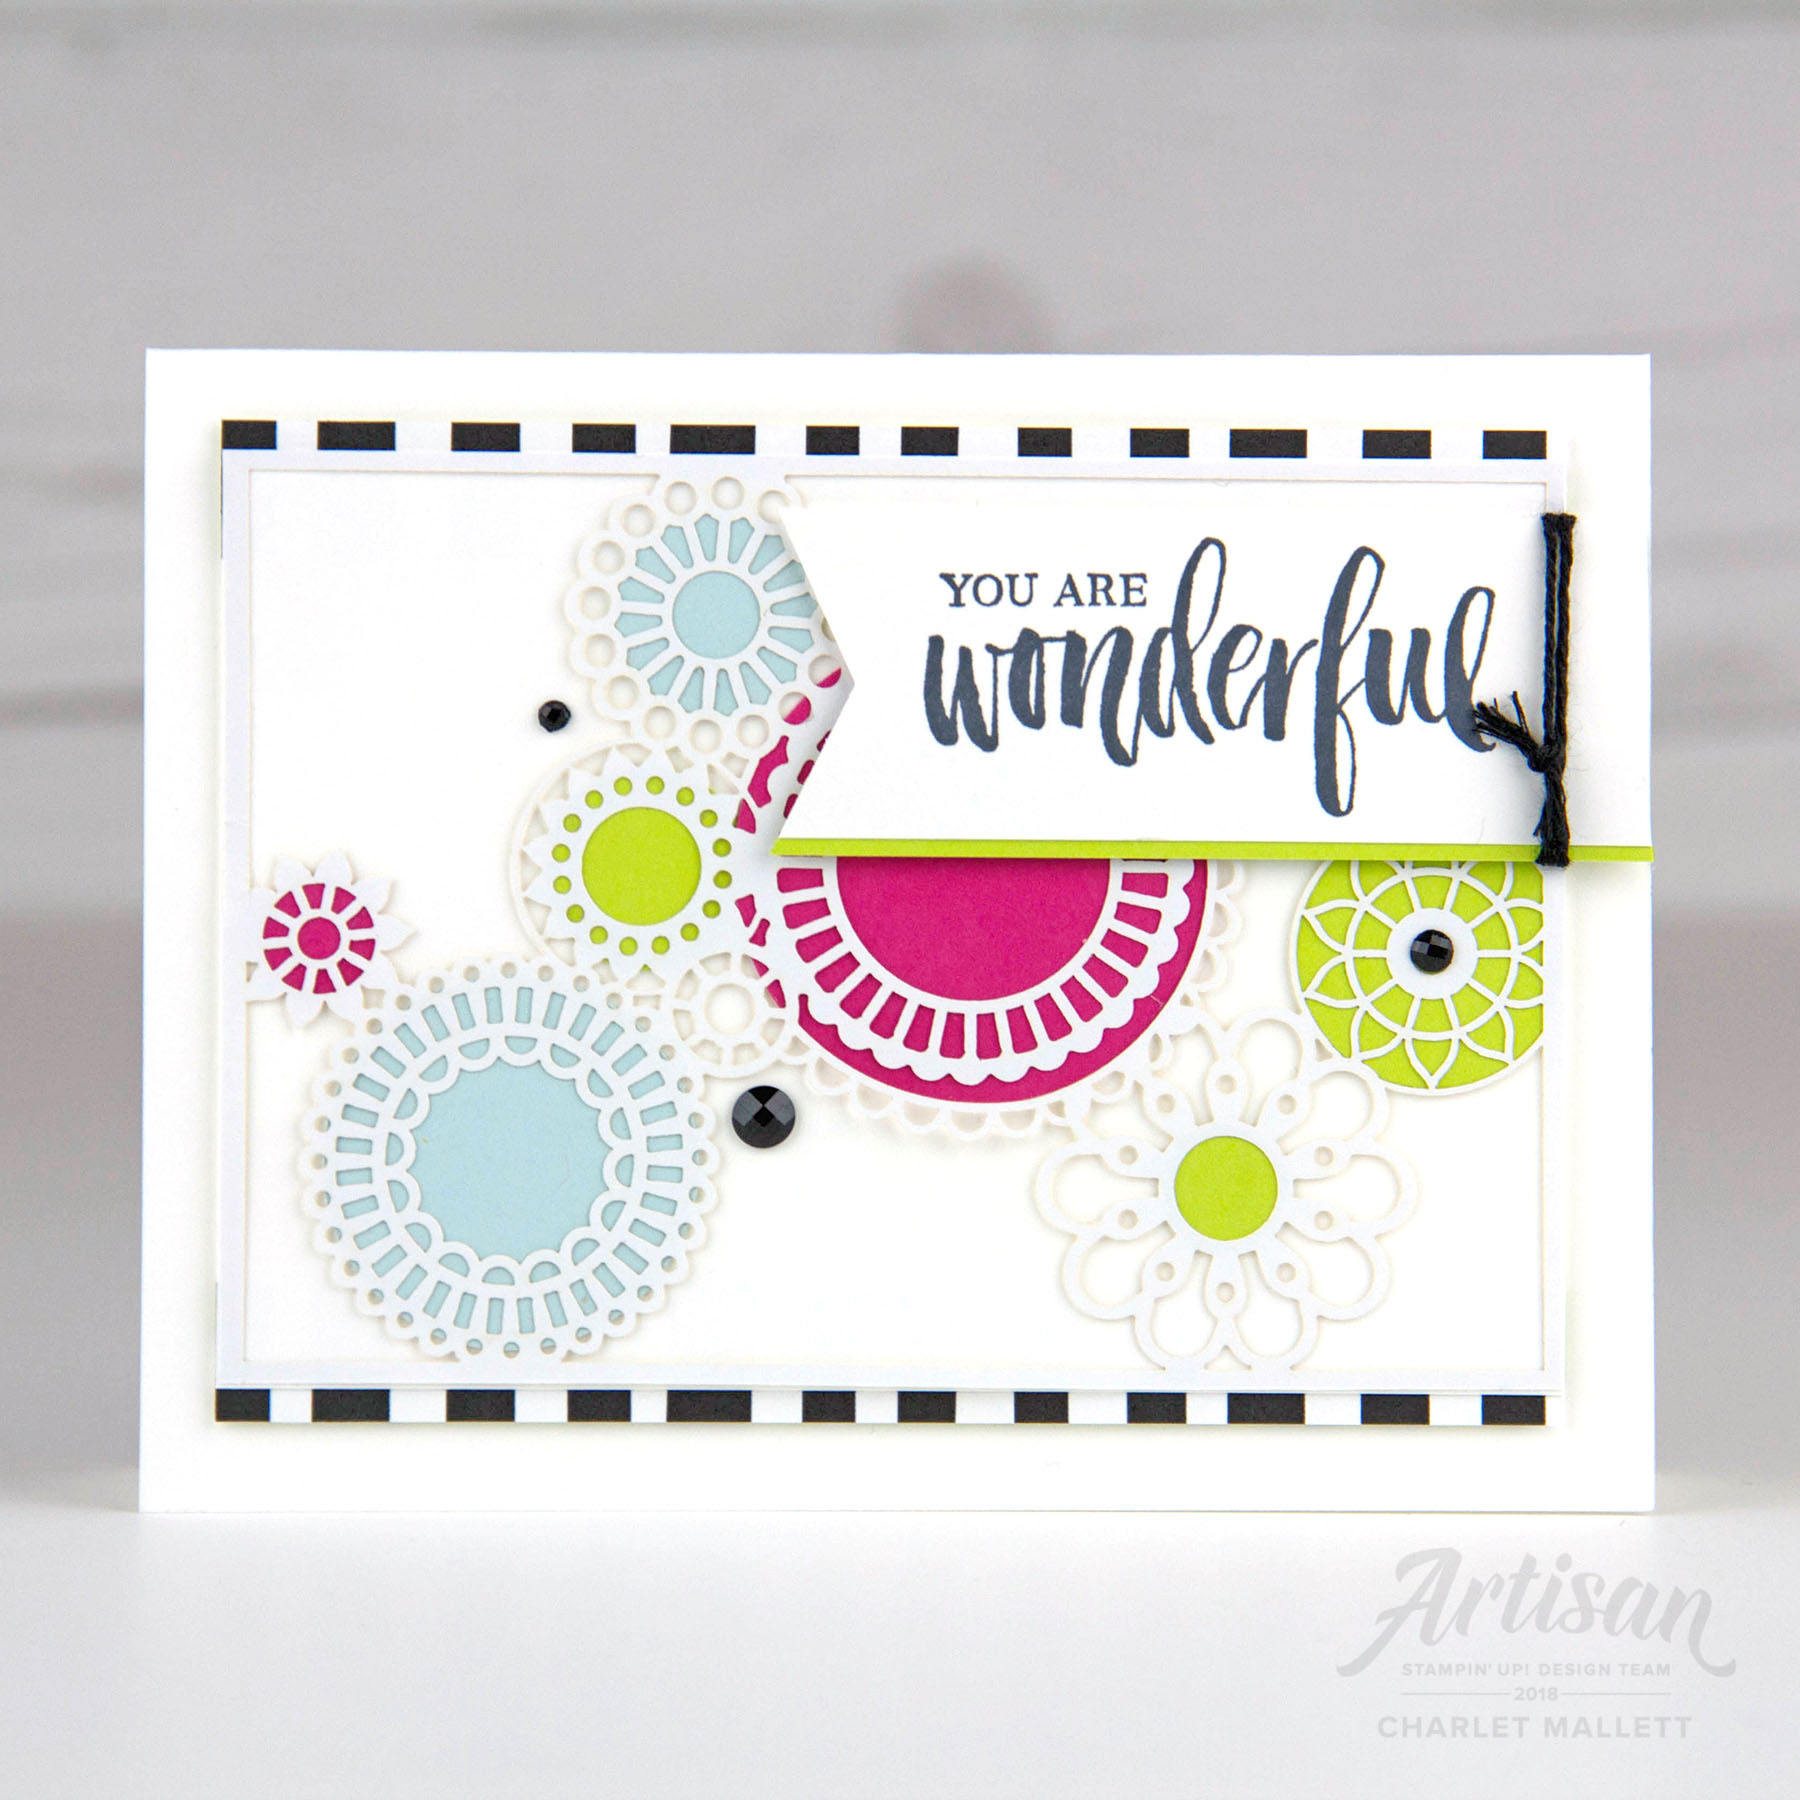 GDP138 - Charlet Mallett, Stampin' Up!Greeting is from Rooted in Nature.